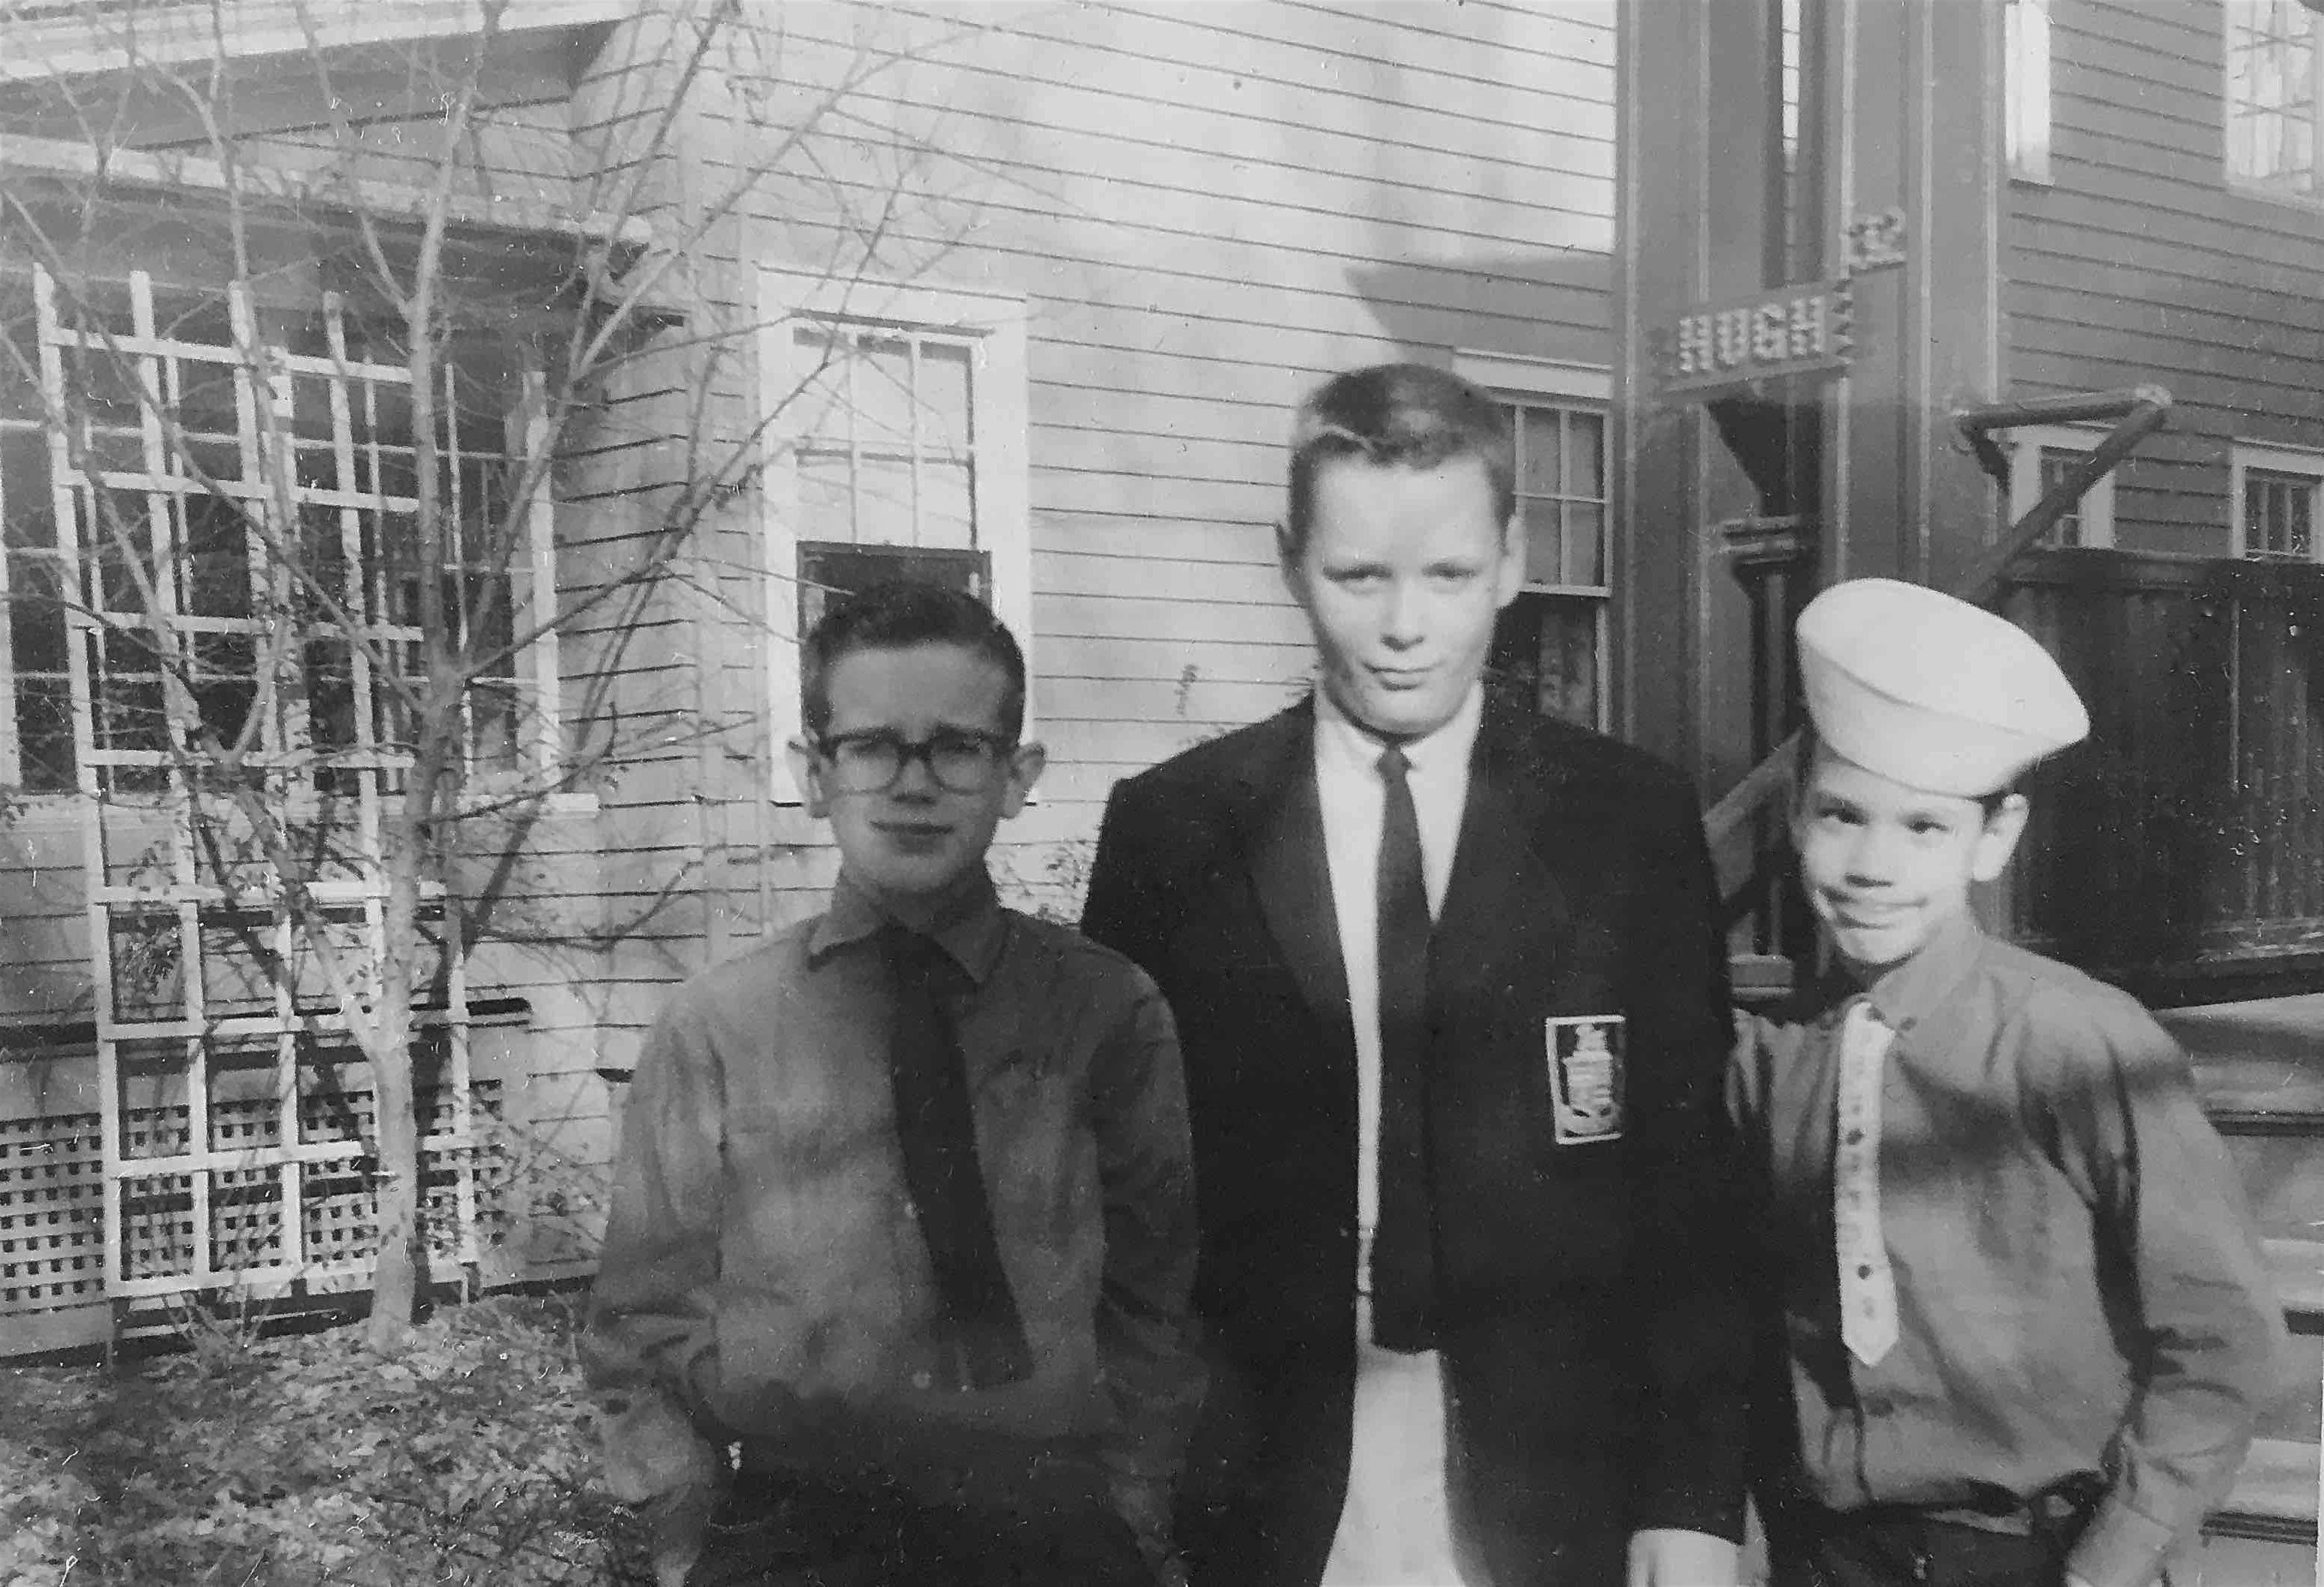 Me, Frank and David in front of 32 Walkley Road, March 1962 copy